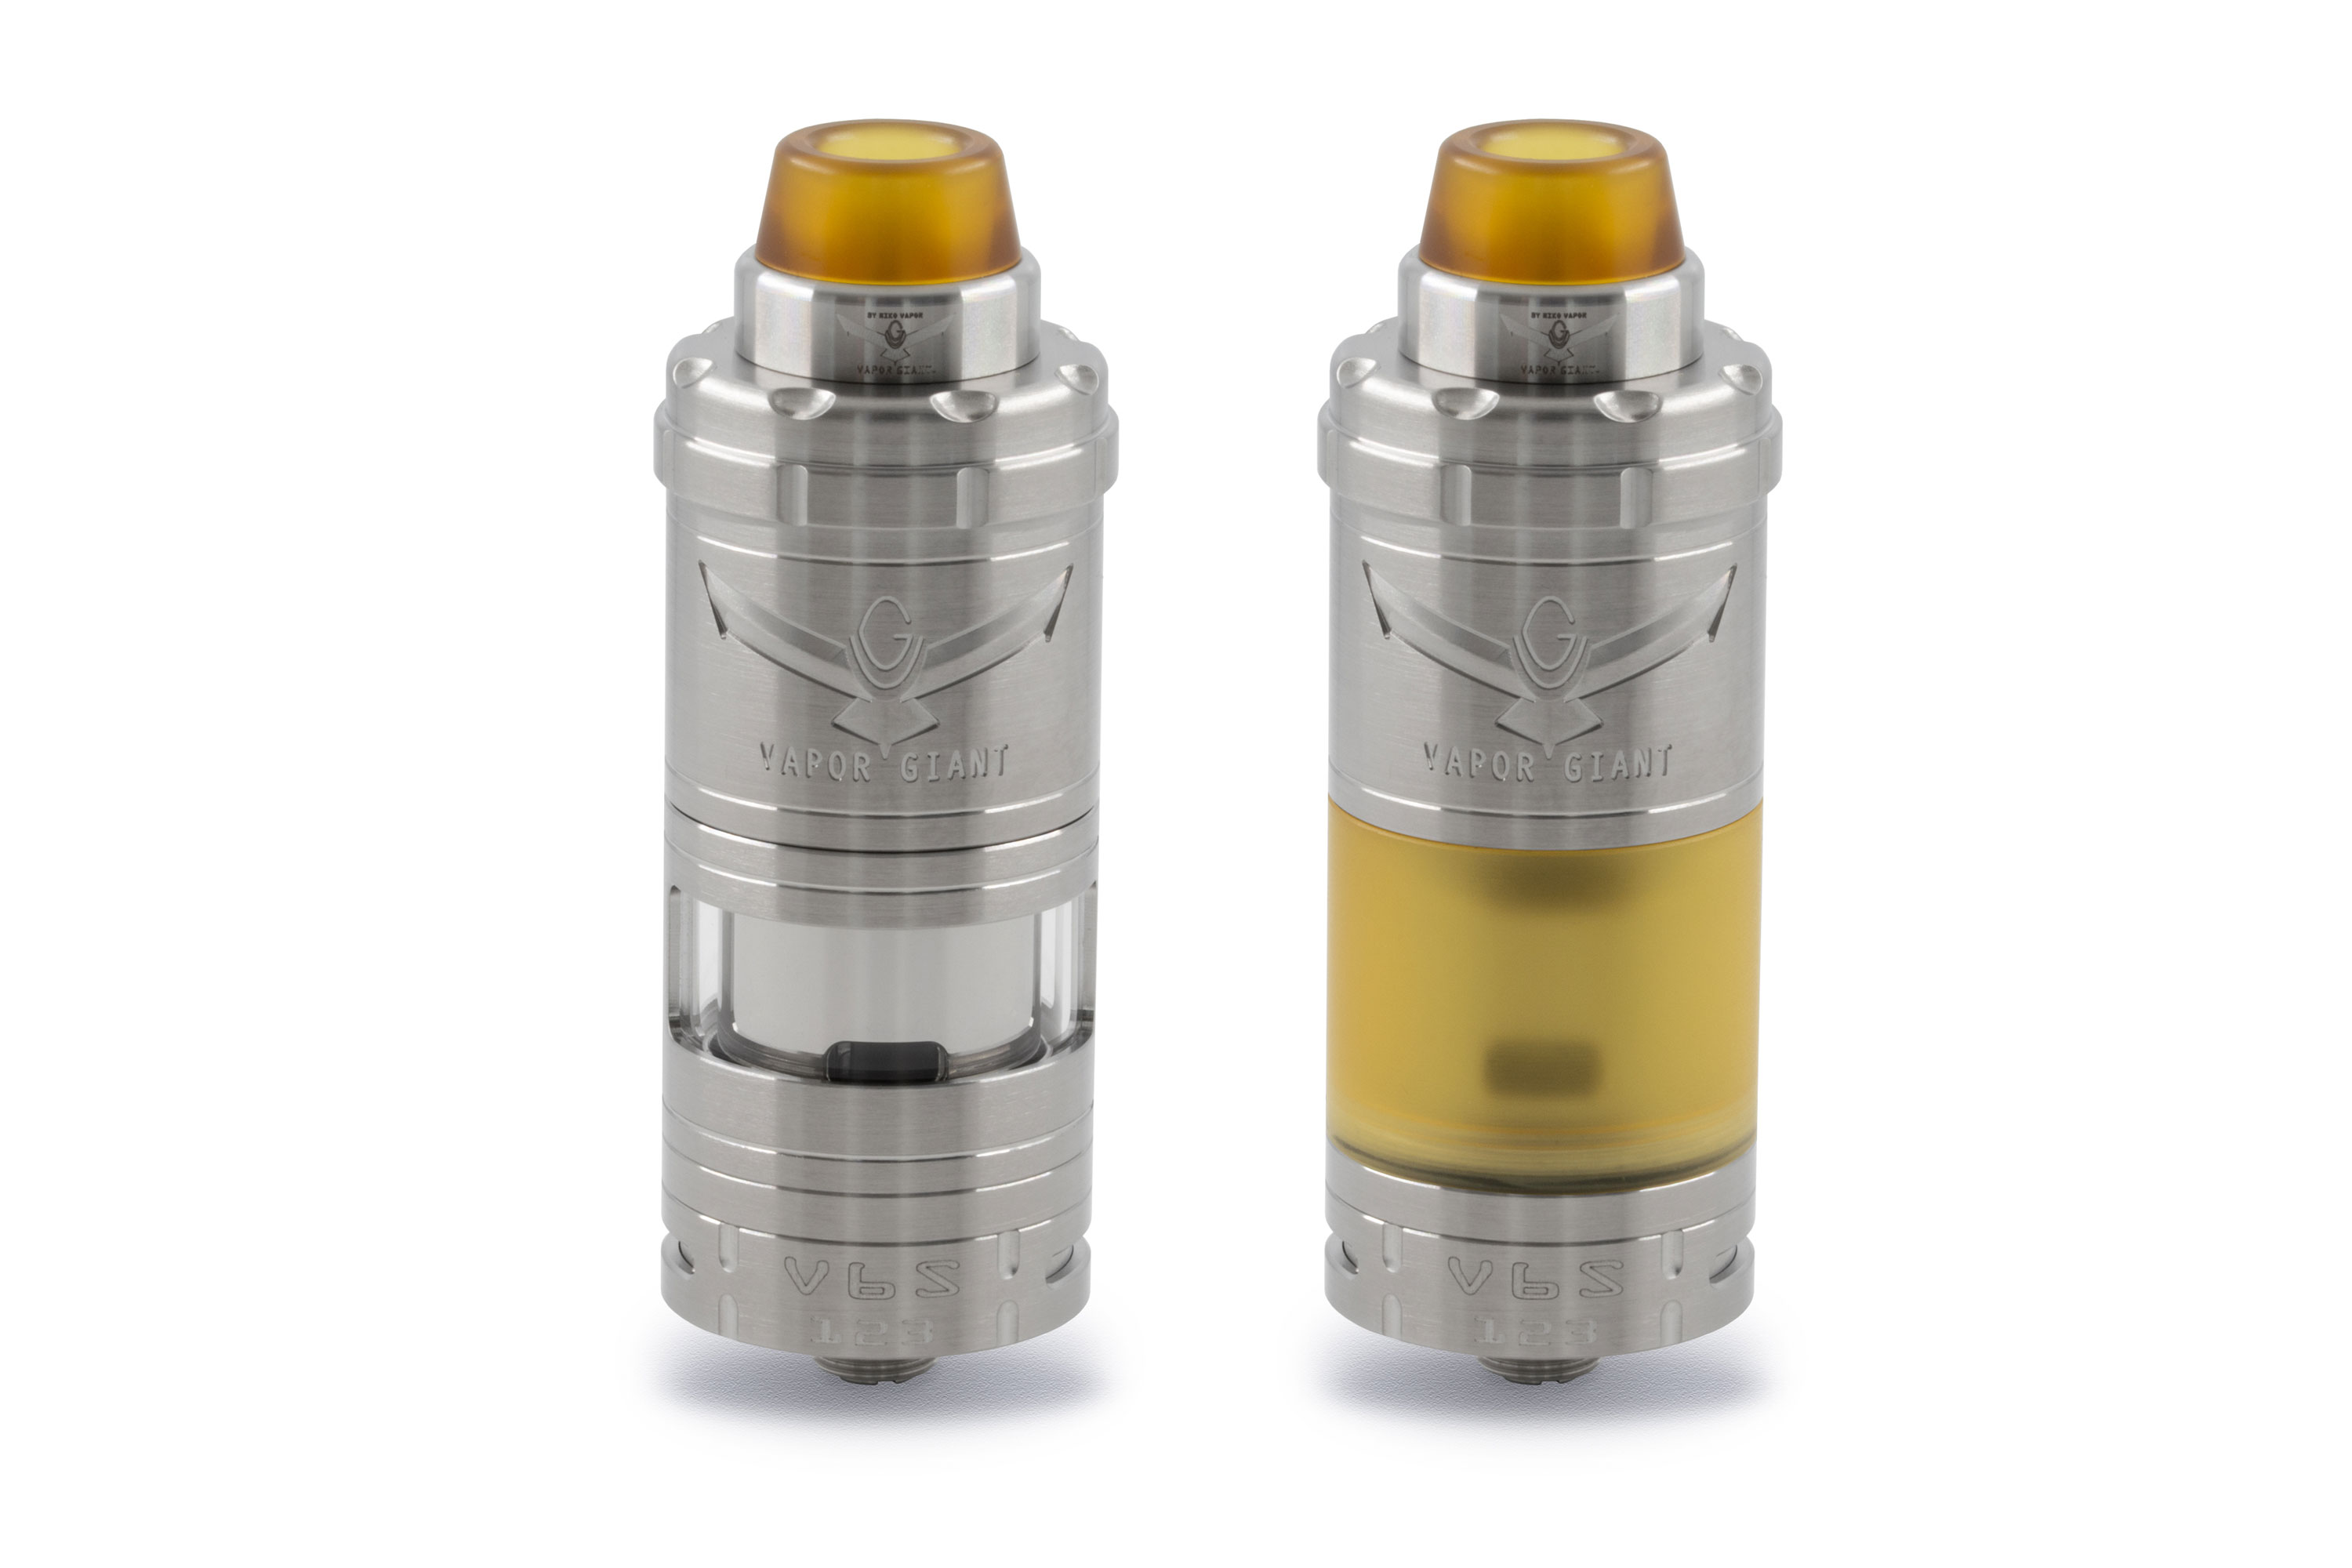 V6S Inox Vapor Giant - Double